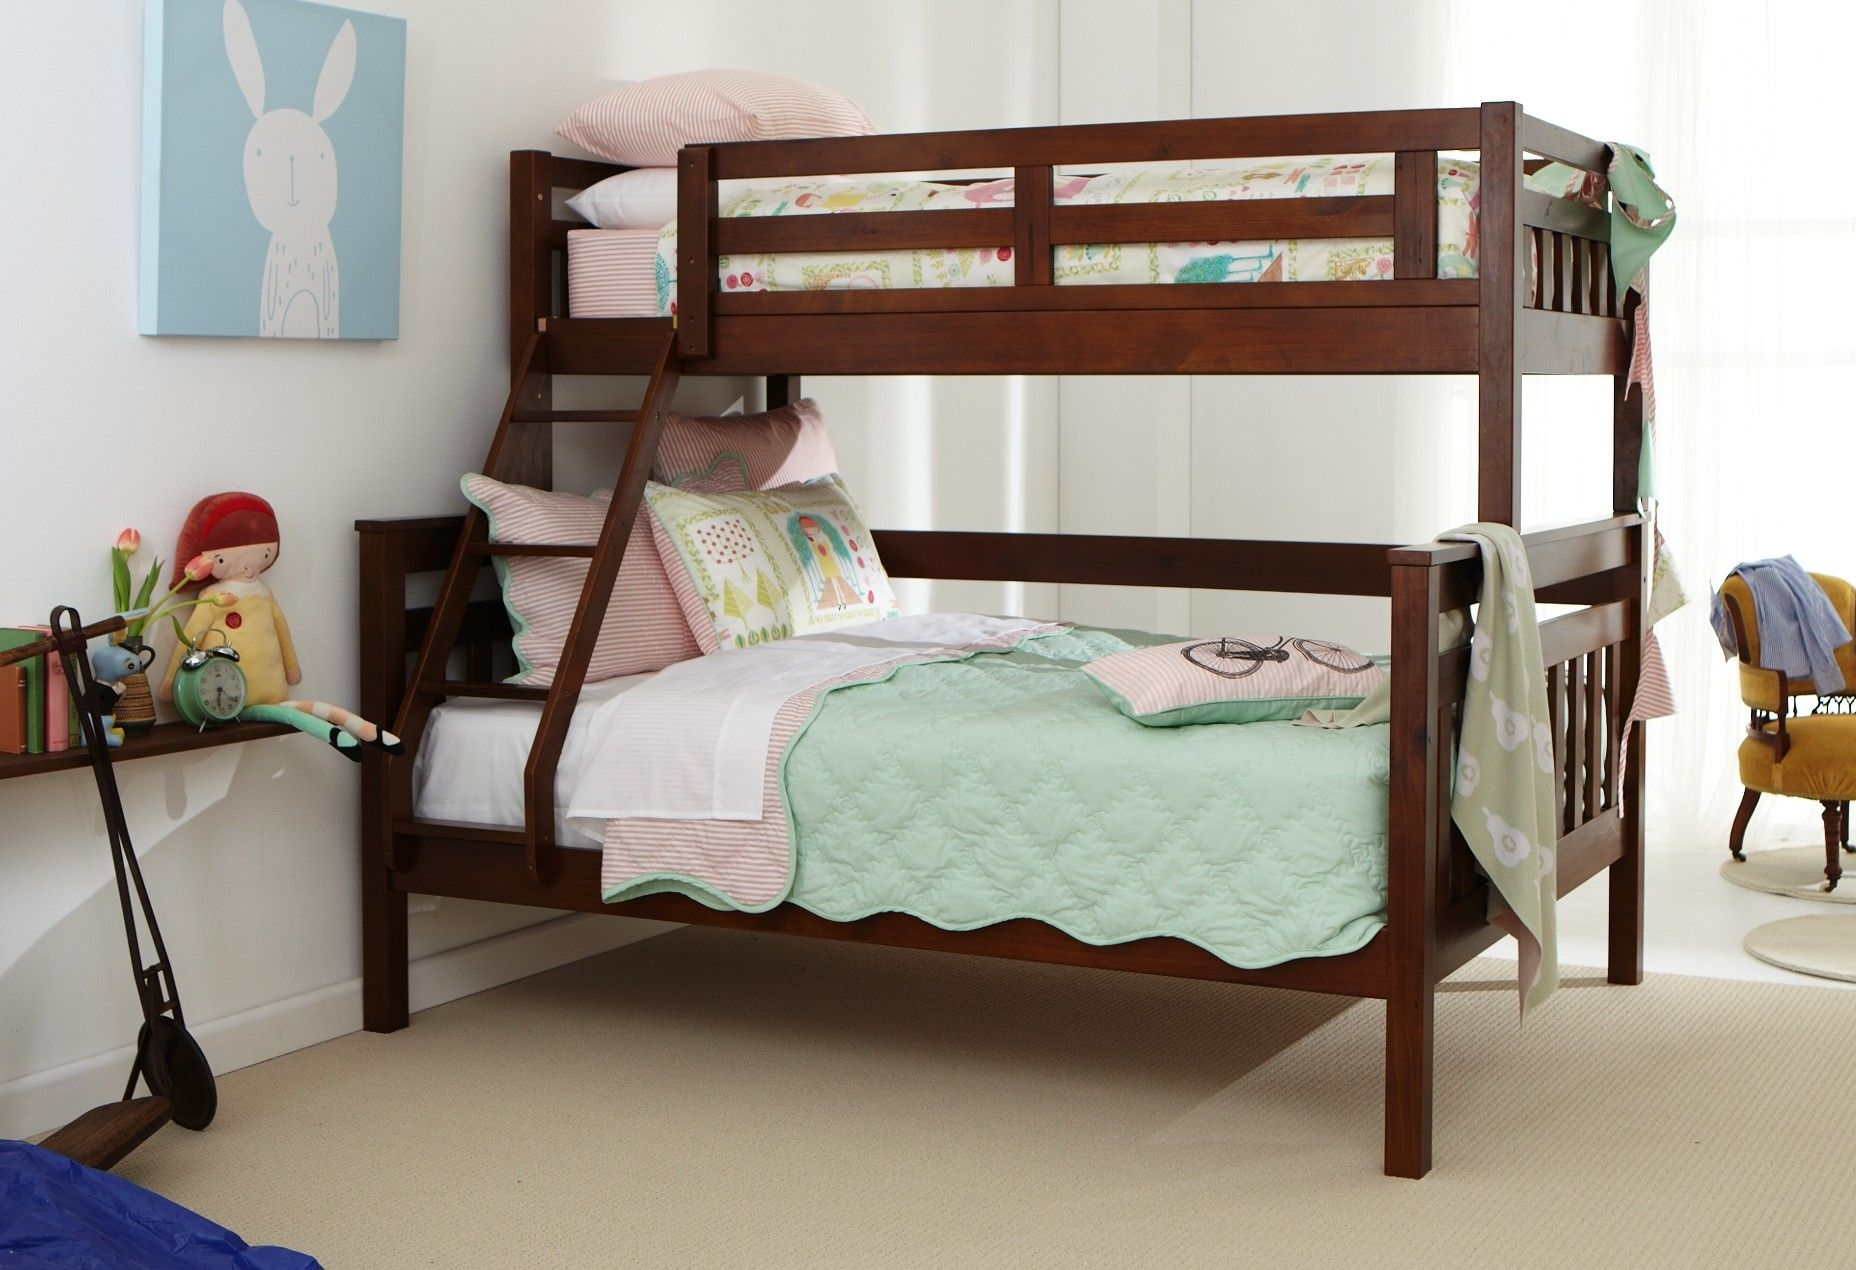 Kids Bed Accessories Aztec Trio Bunk Stylish Single Over Double Bunk Bed